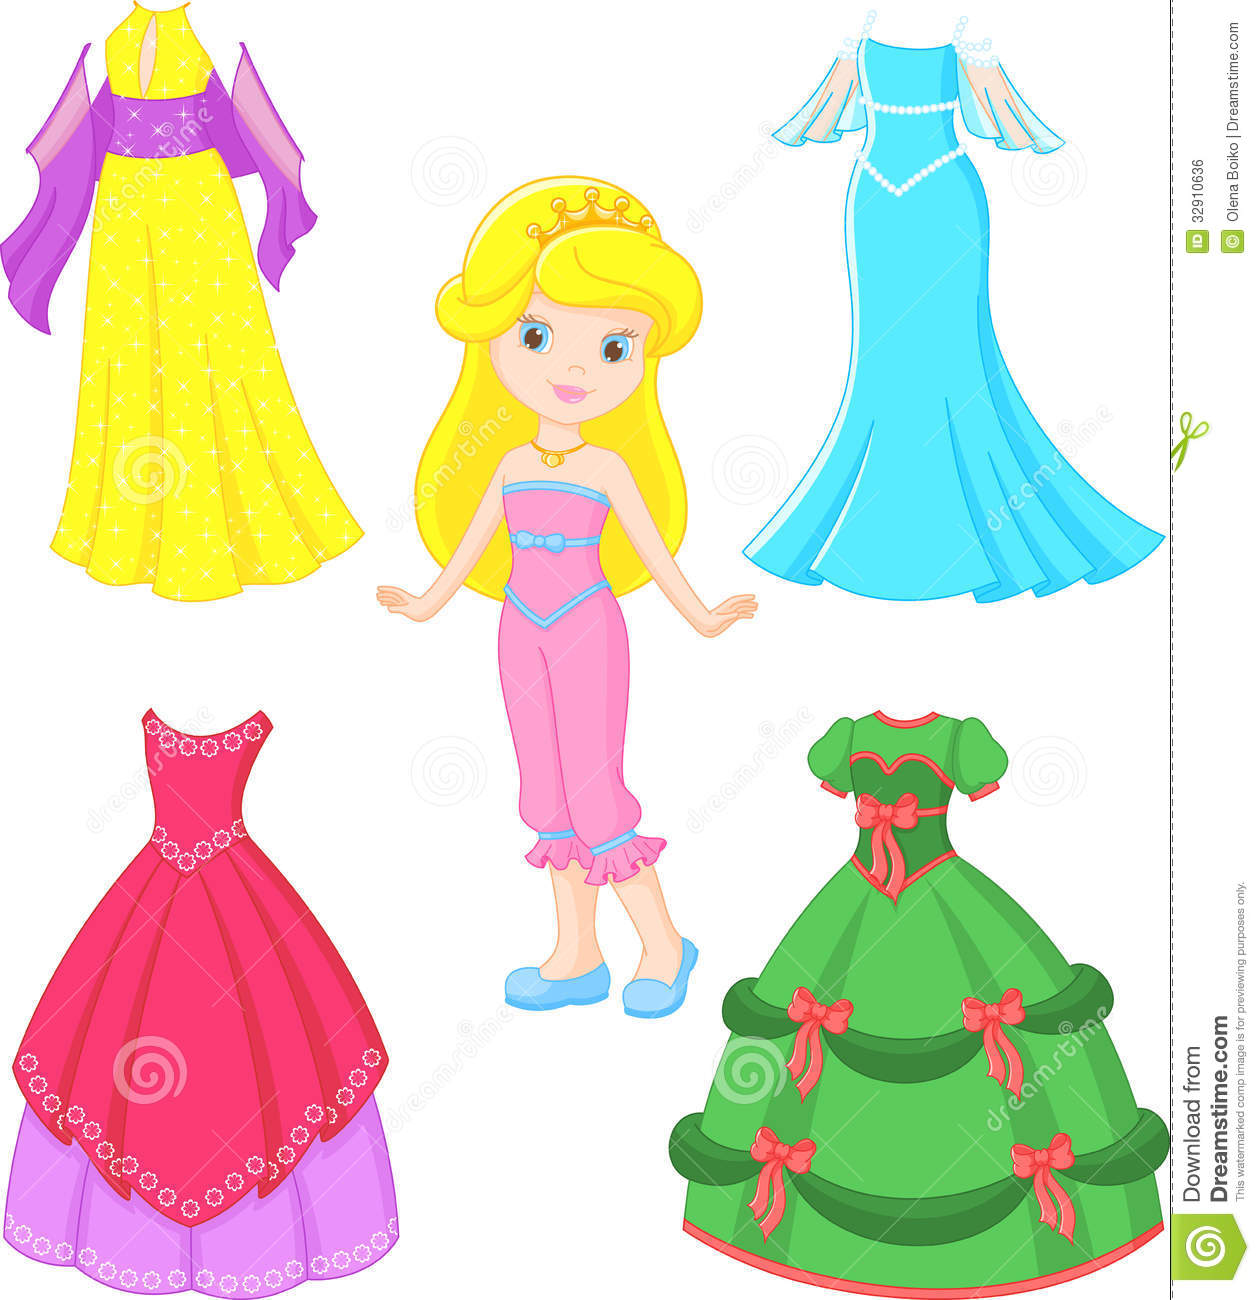 Princess Dress Royalty Free Stock Image - Image: 32910636